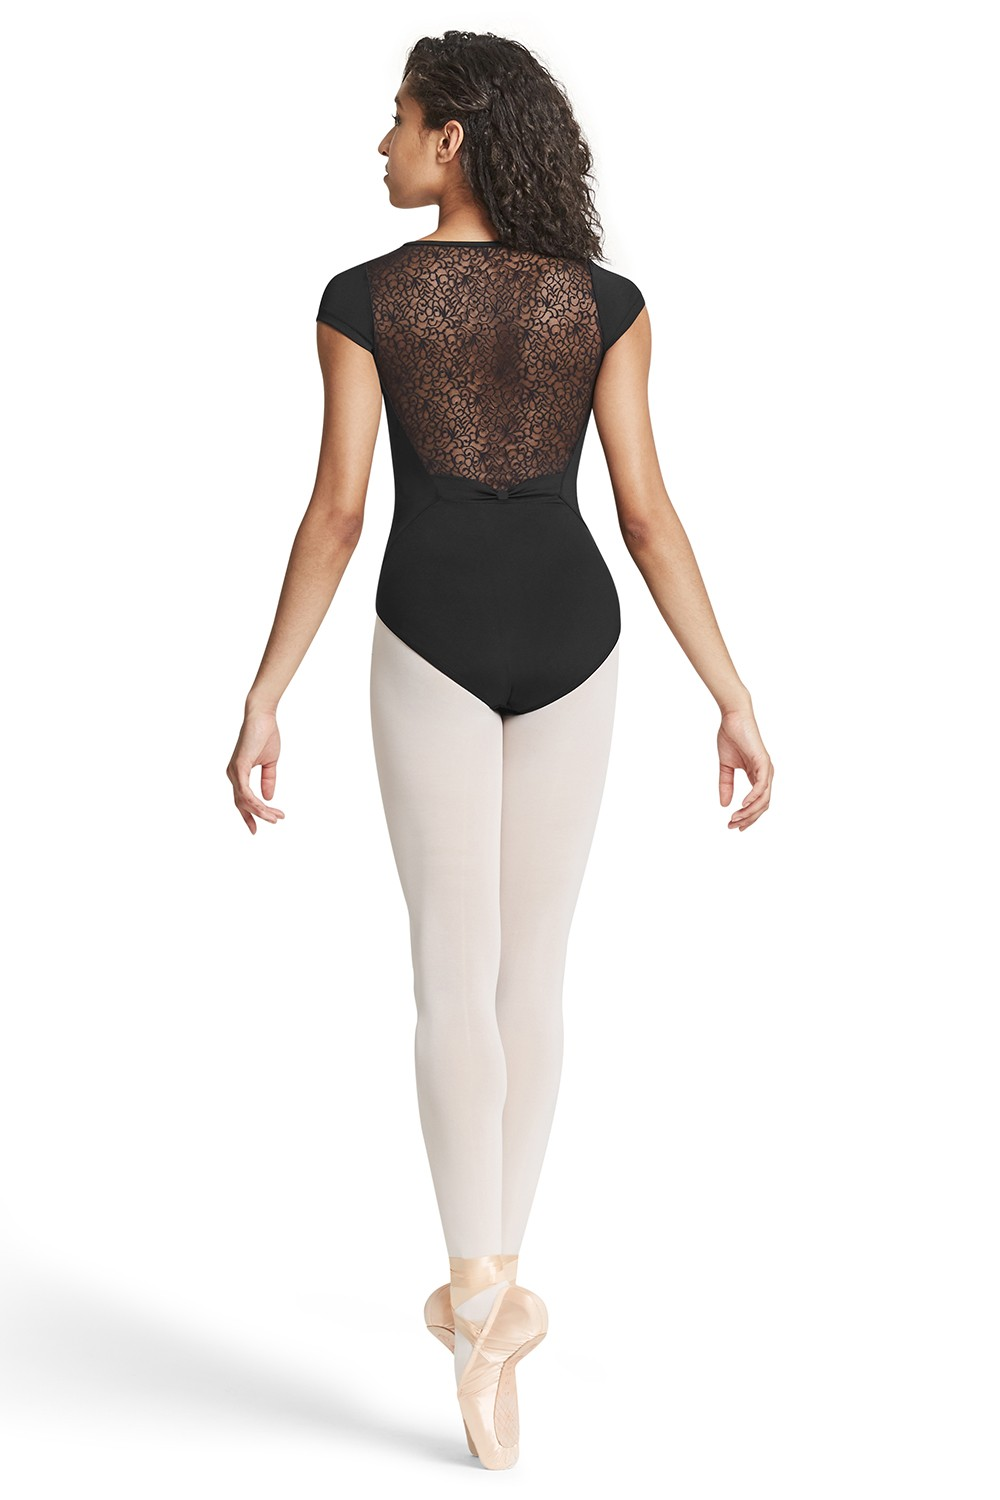 Bow Detail Cap Sleeve Leotard Womens Short Sleeve Leotards